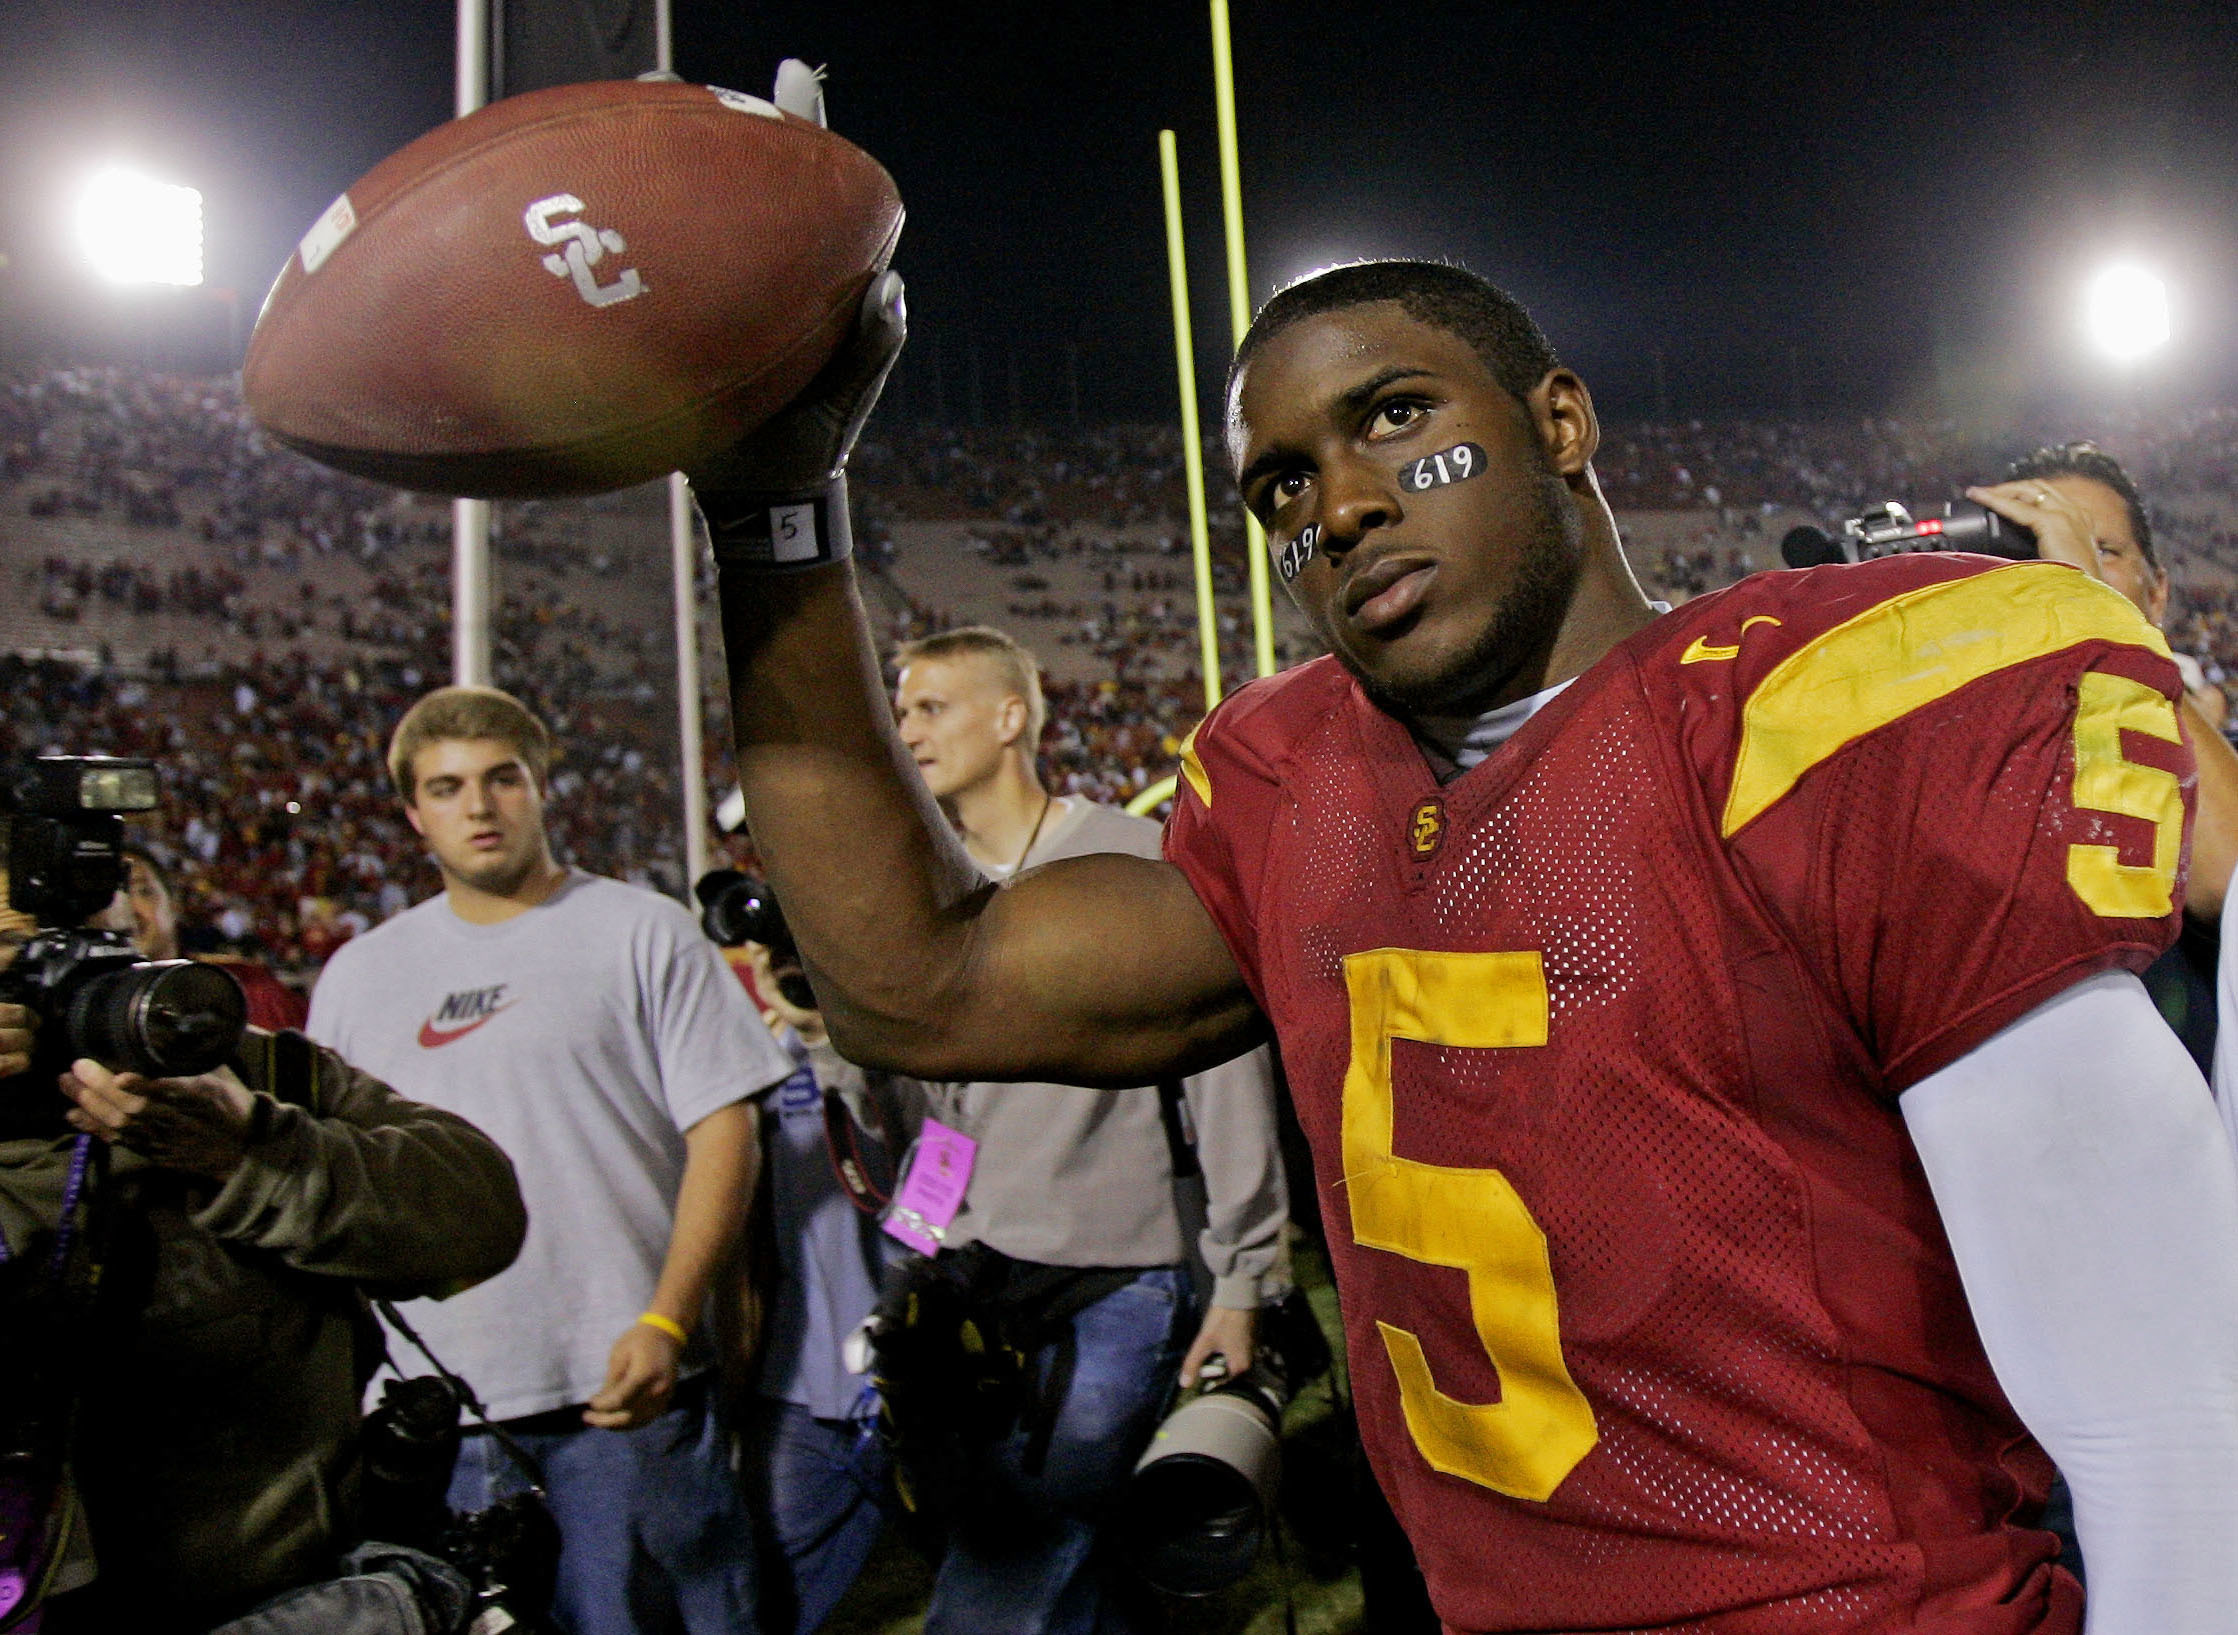 Reggie Bush is welcomed back to USC after 10-year NCAA ban